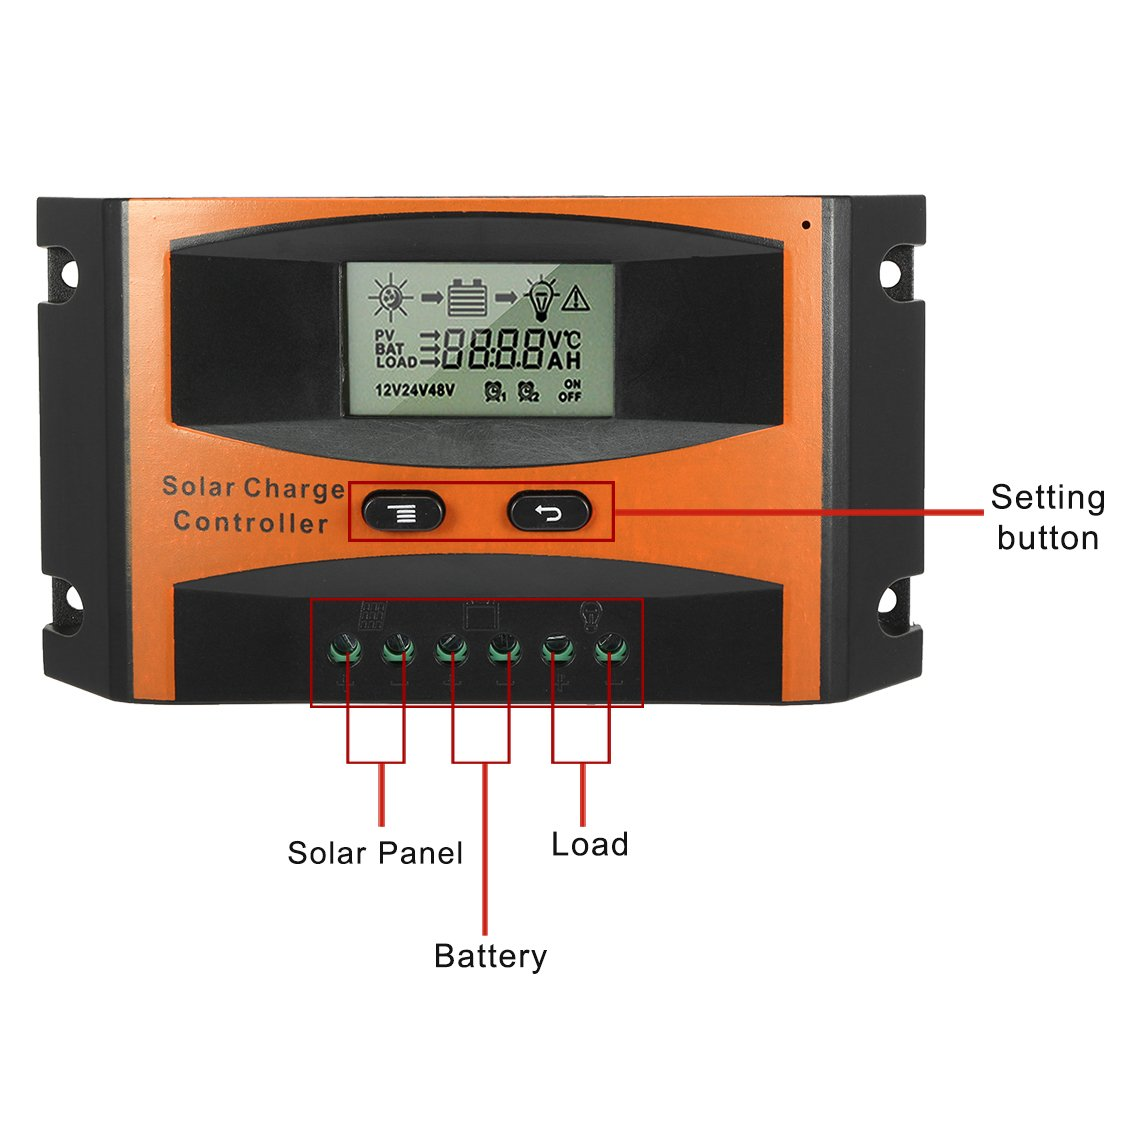 Uxcell Intelligent 25a Solar Panel Charge Controller Pwm Charger Schematic Manufacturers 12v 24v Battery Regulator Pv2425 Garden Outdoor